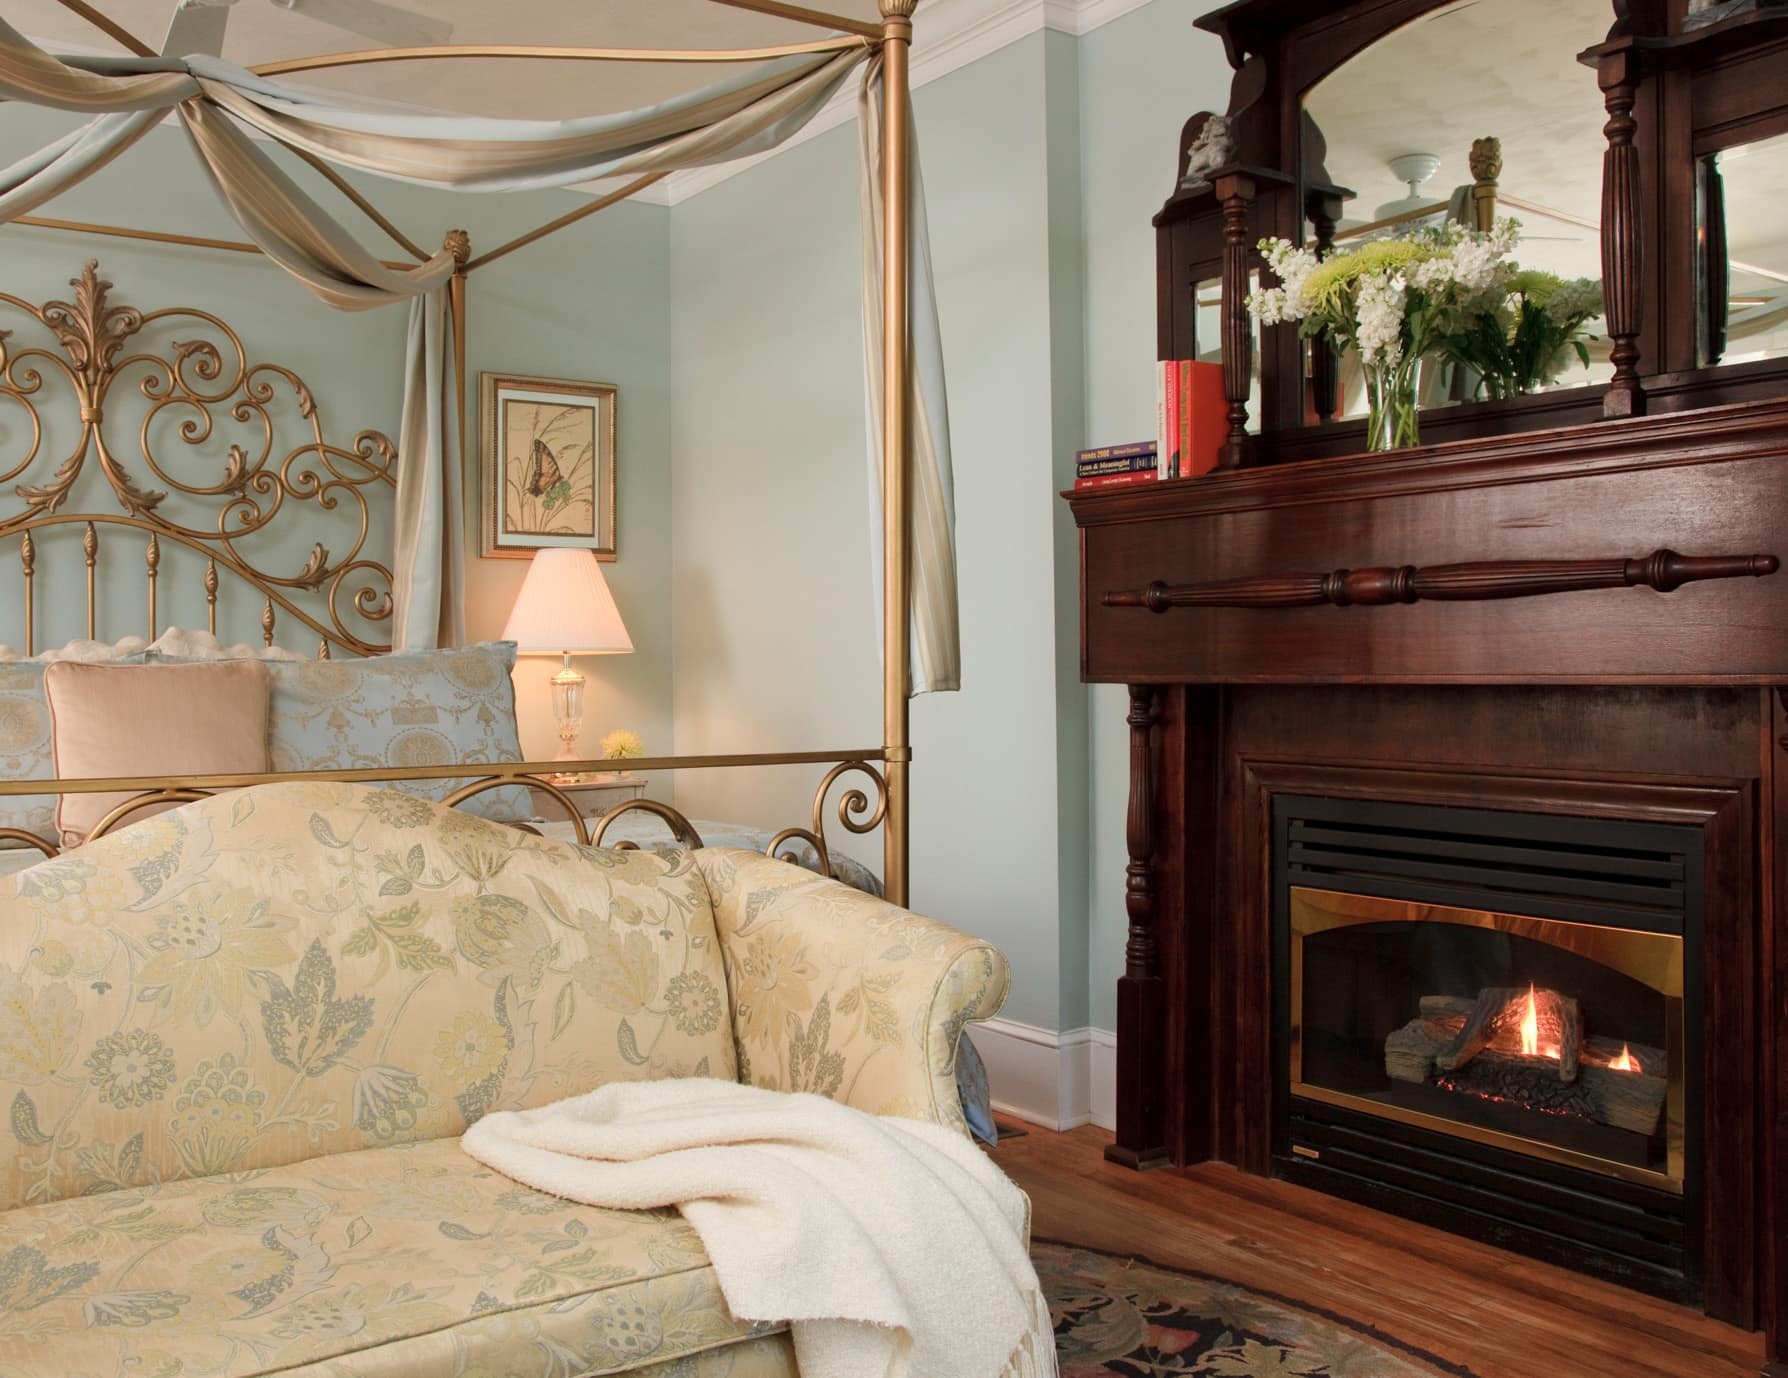 Manteo, NC Lodging Golden King Bed, Couch & Fireplace